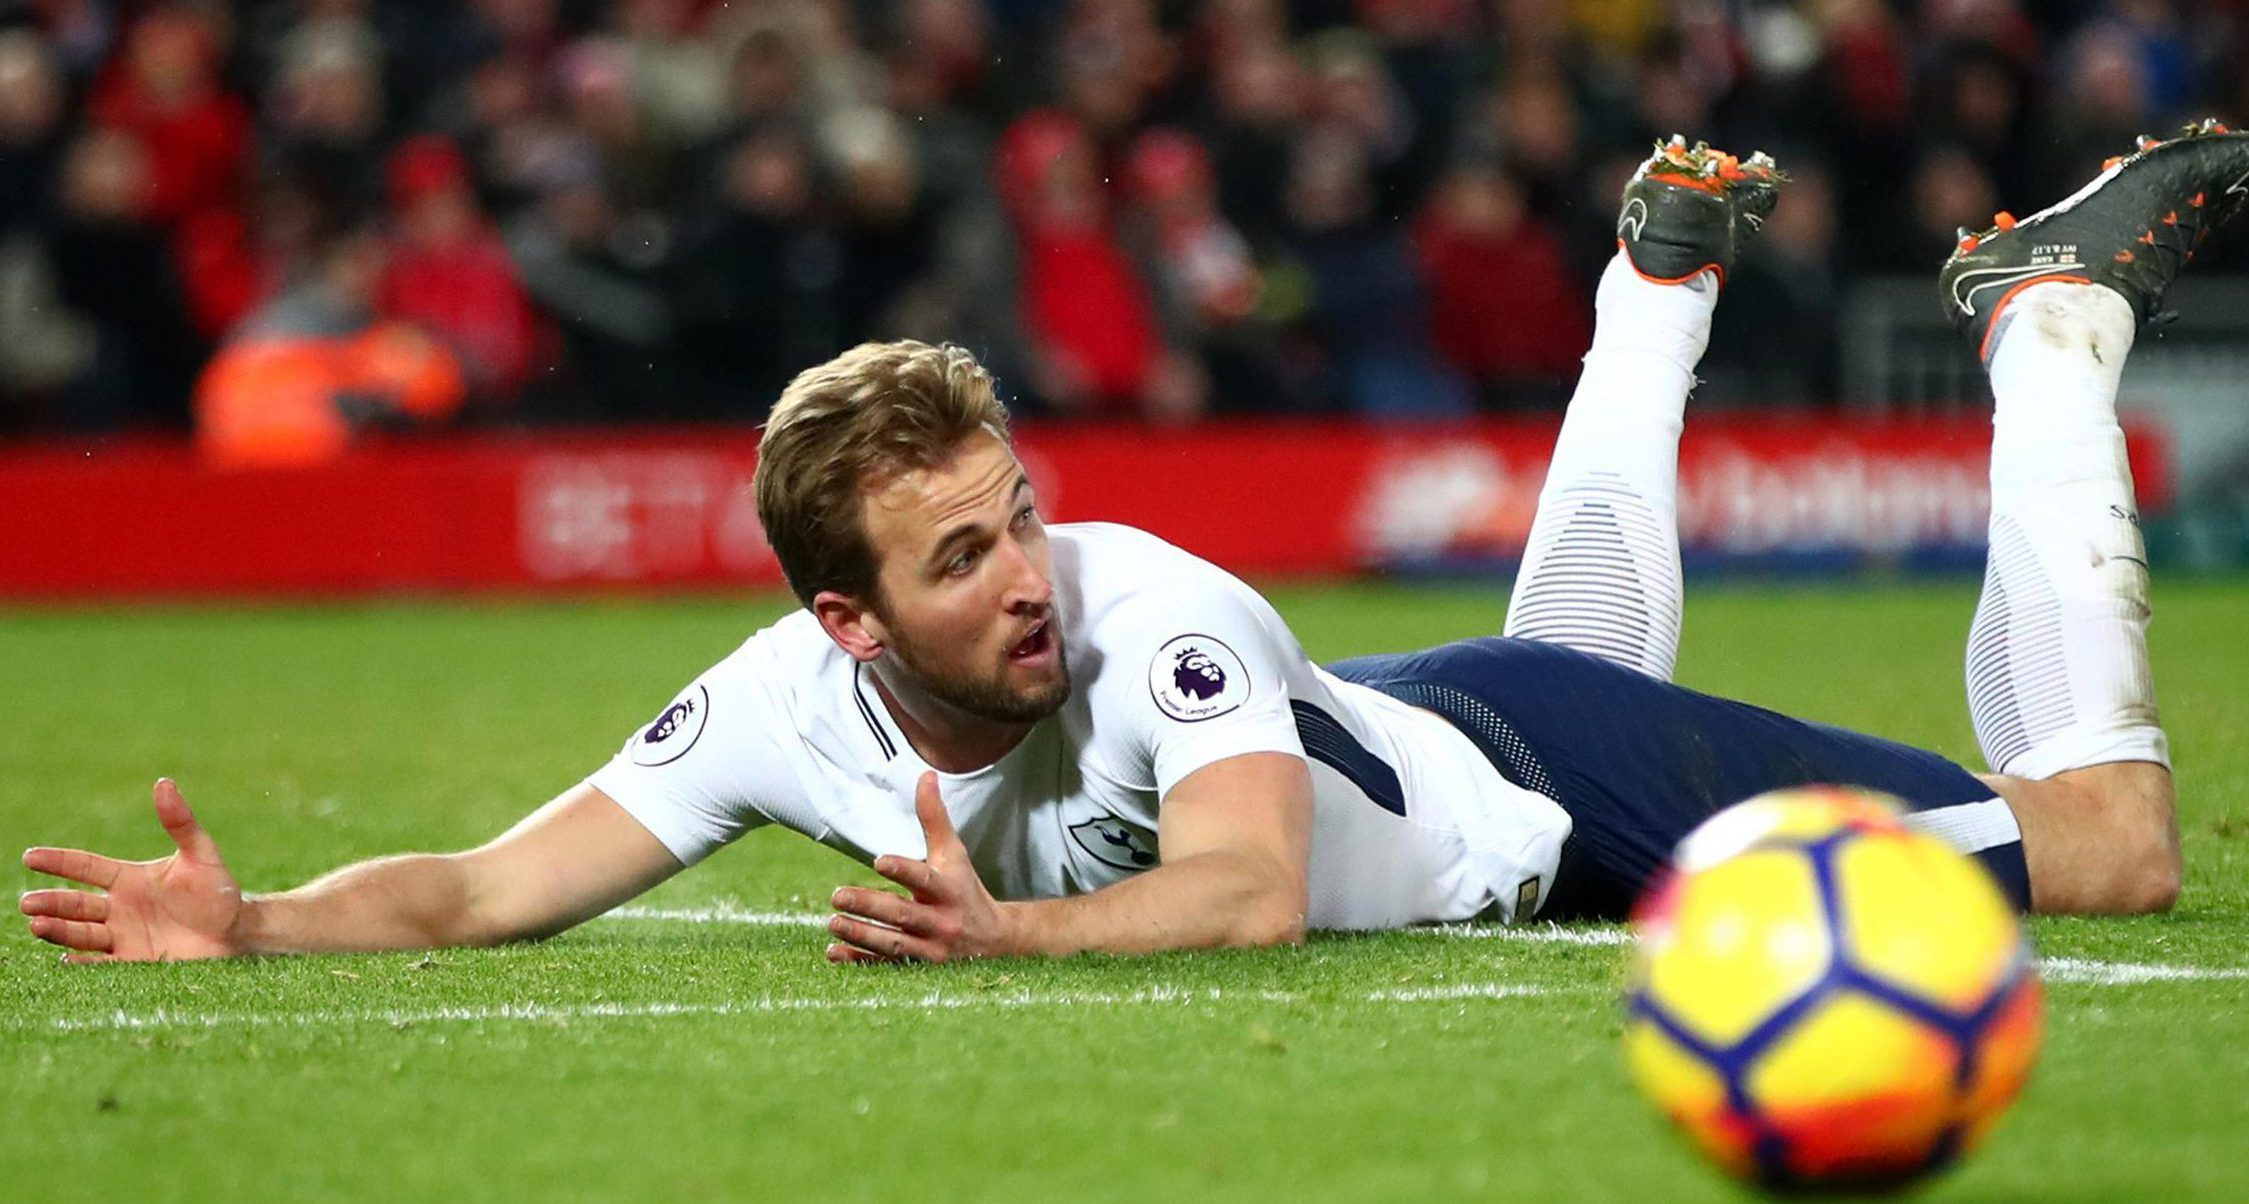 On Sunday Kane was brought down by Loris Karius for Tottenham's first penalty